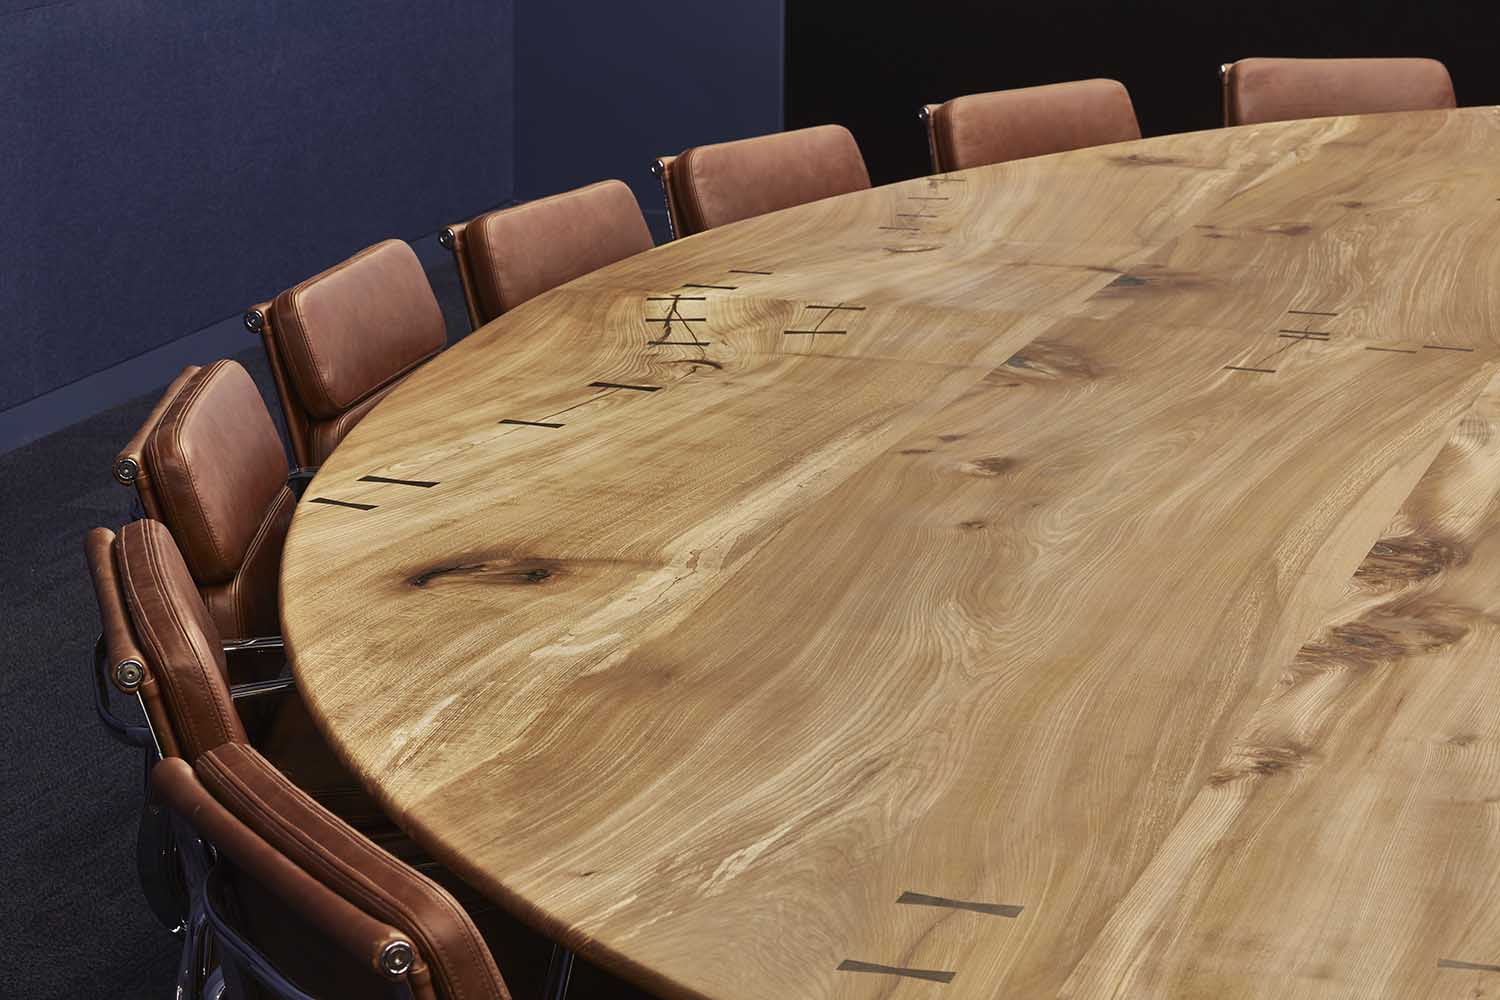 Bespoke eliptical boardroom table made from solid elm with bog oak butterfly ties